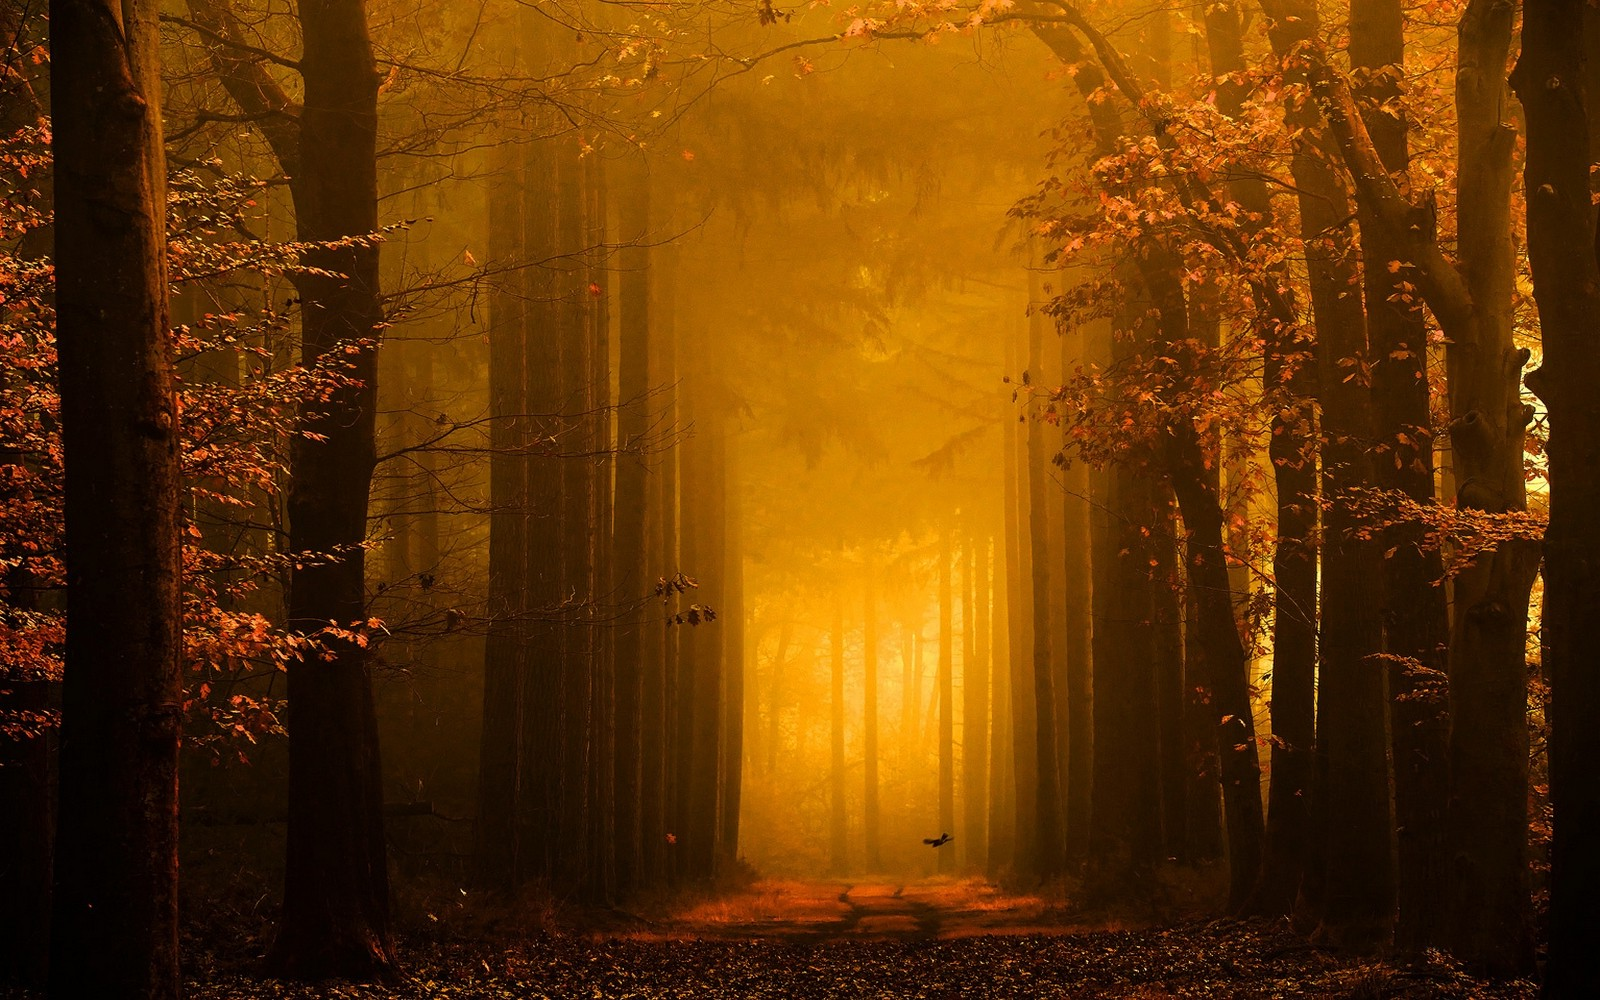 Fall Leaves Pathway Computer Wallpaper Landscape Nature Forest Path Leaves Trees Mist